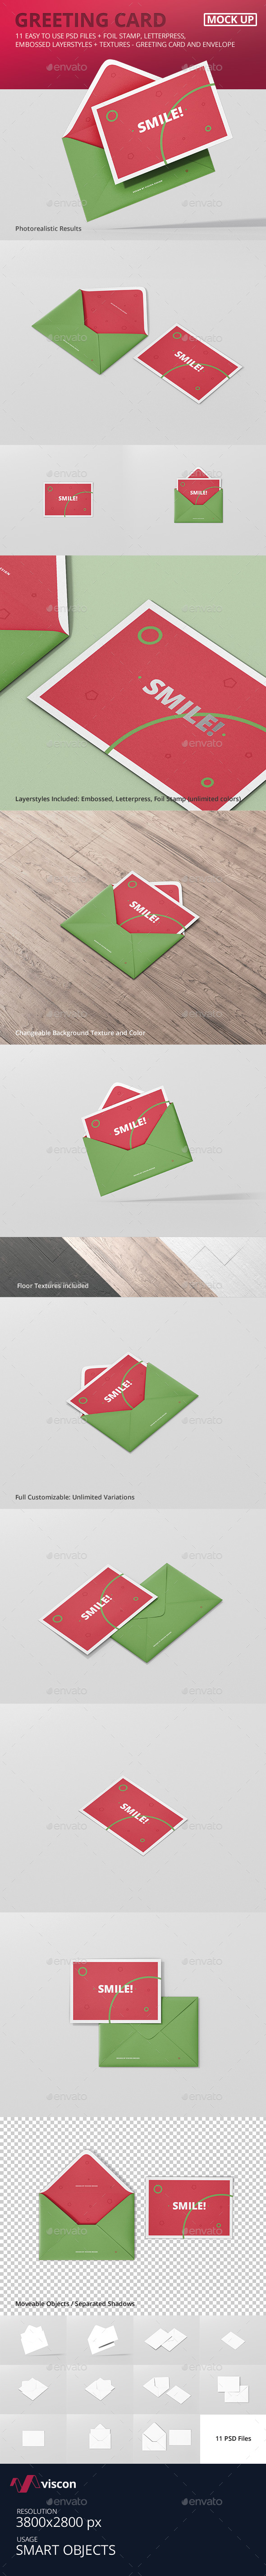 GraphicRiver Greeting Card Mockup with Envelope 21086283